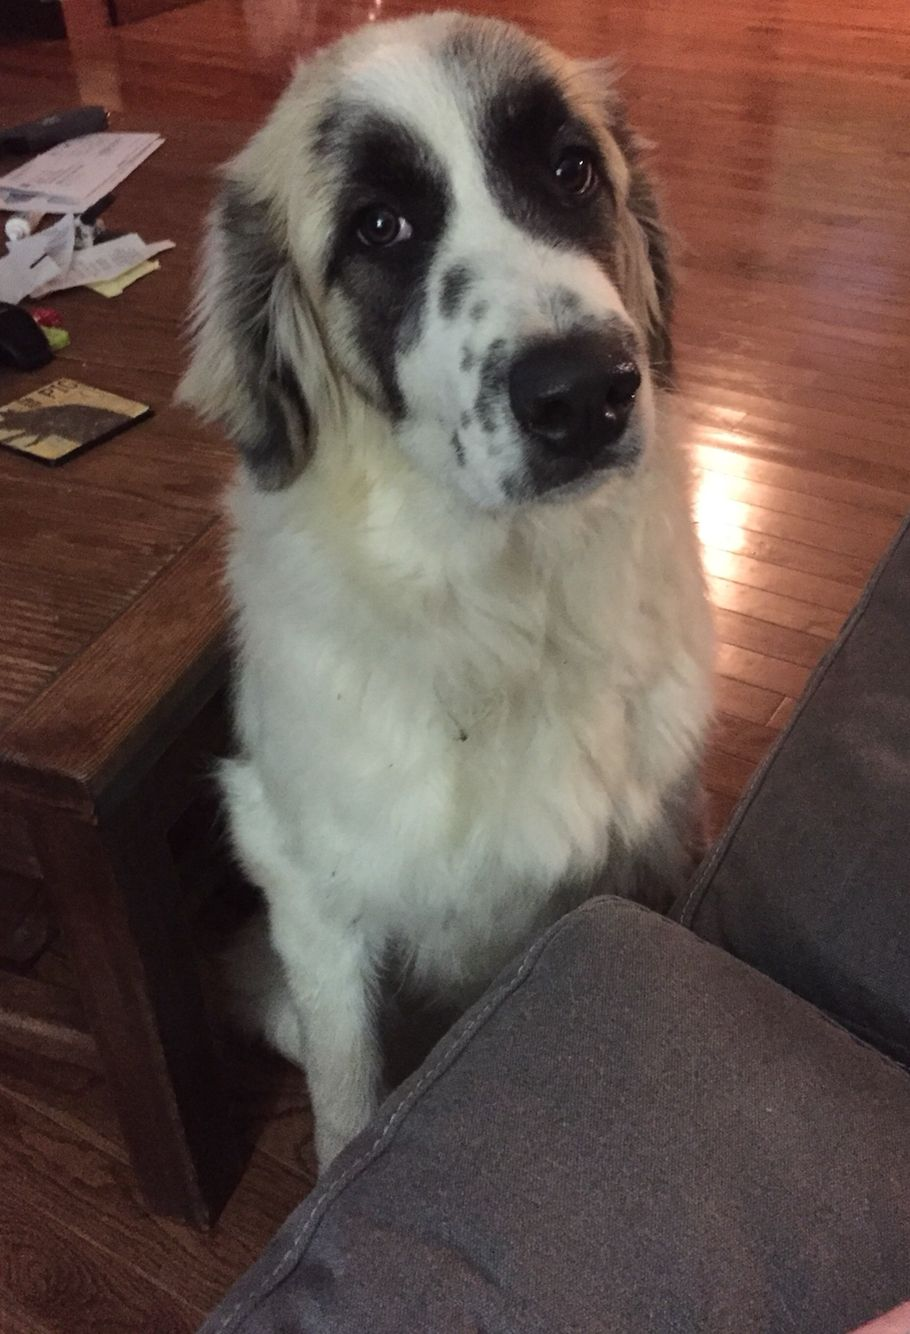 Ford The Great Pyrenees Anatolian Shepard Mix Anatolian Shepherd Dog Kangal Dog Herding Dogs